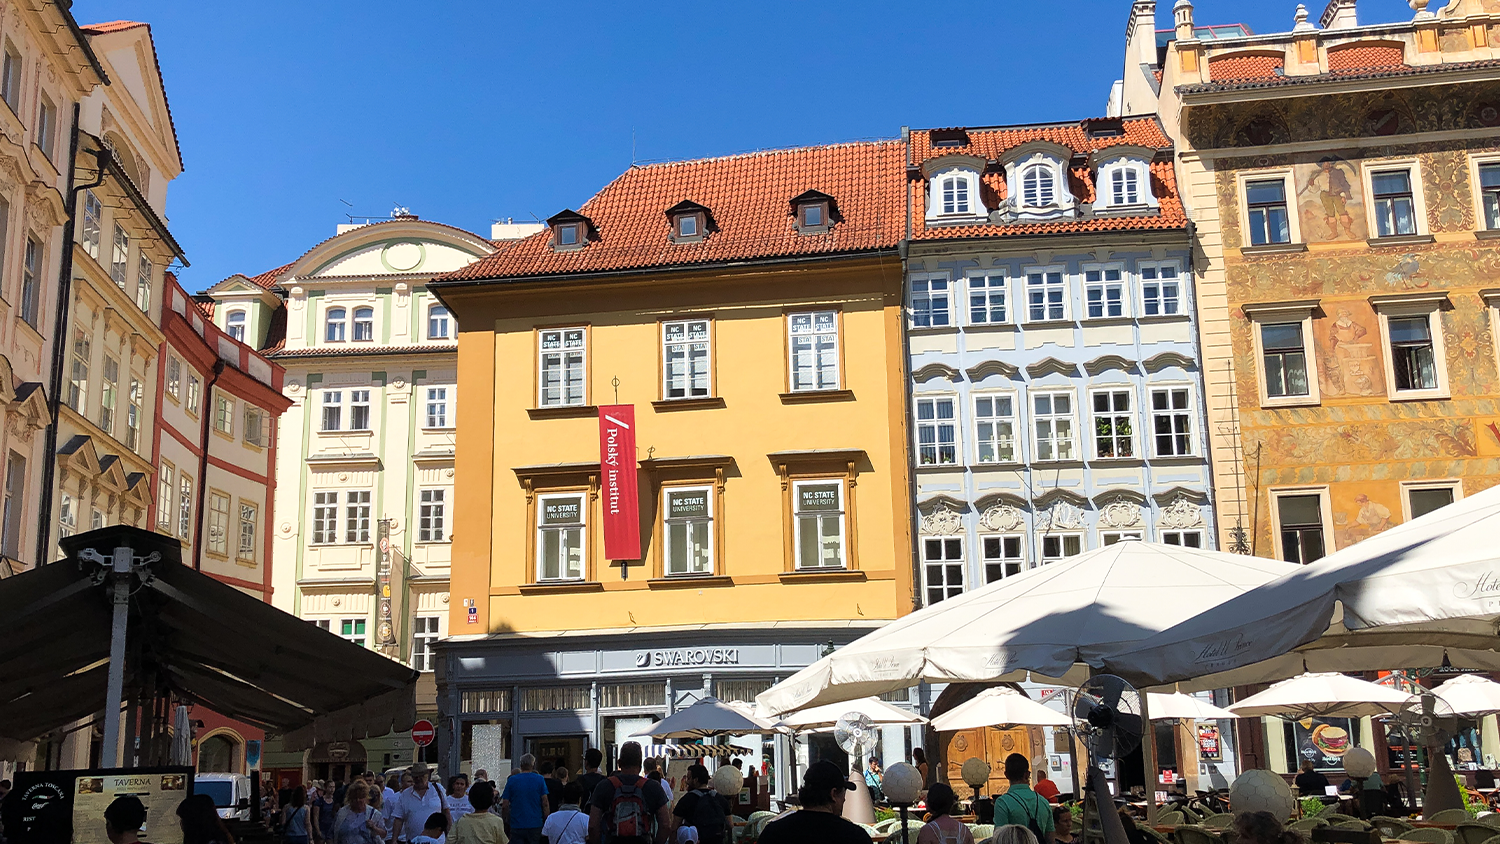 Picture of the outside of the building of the NCState European Center in Prague.